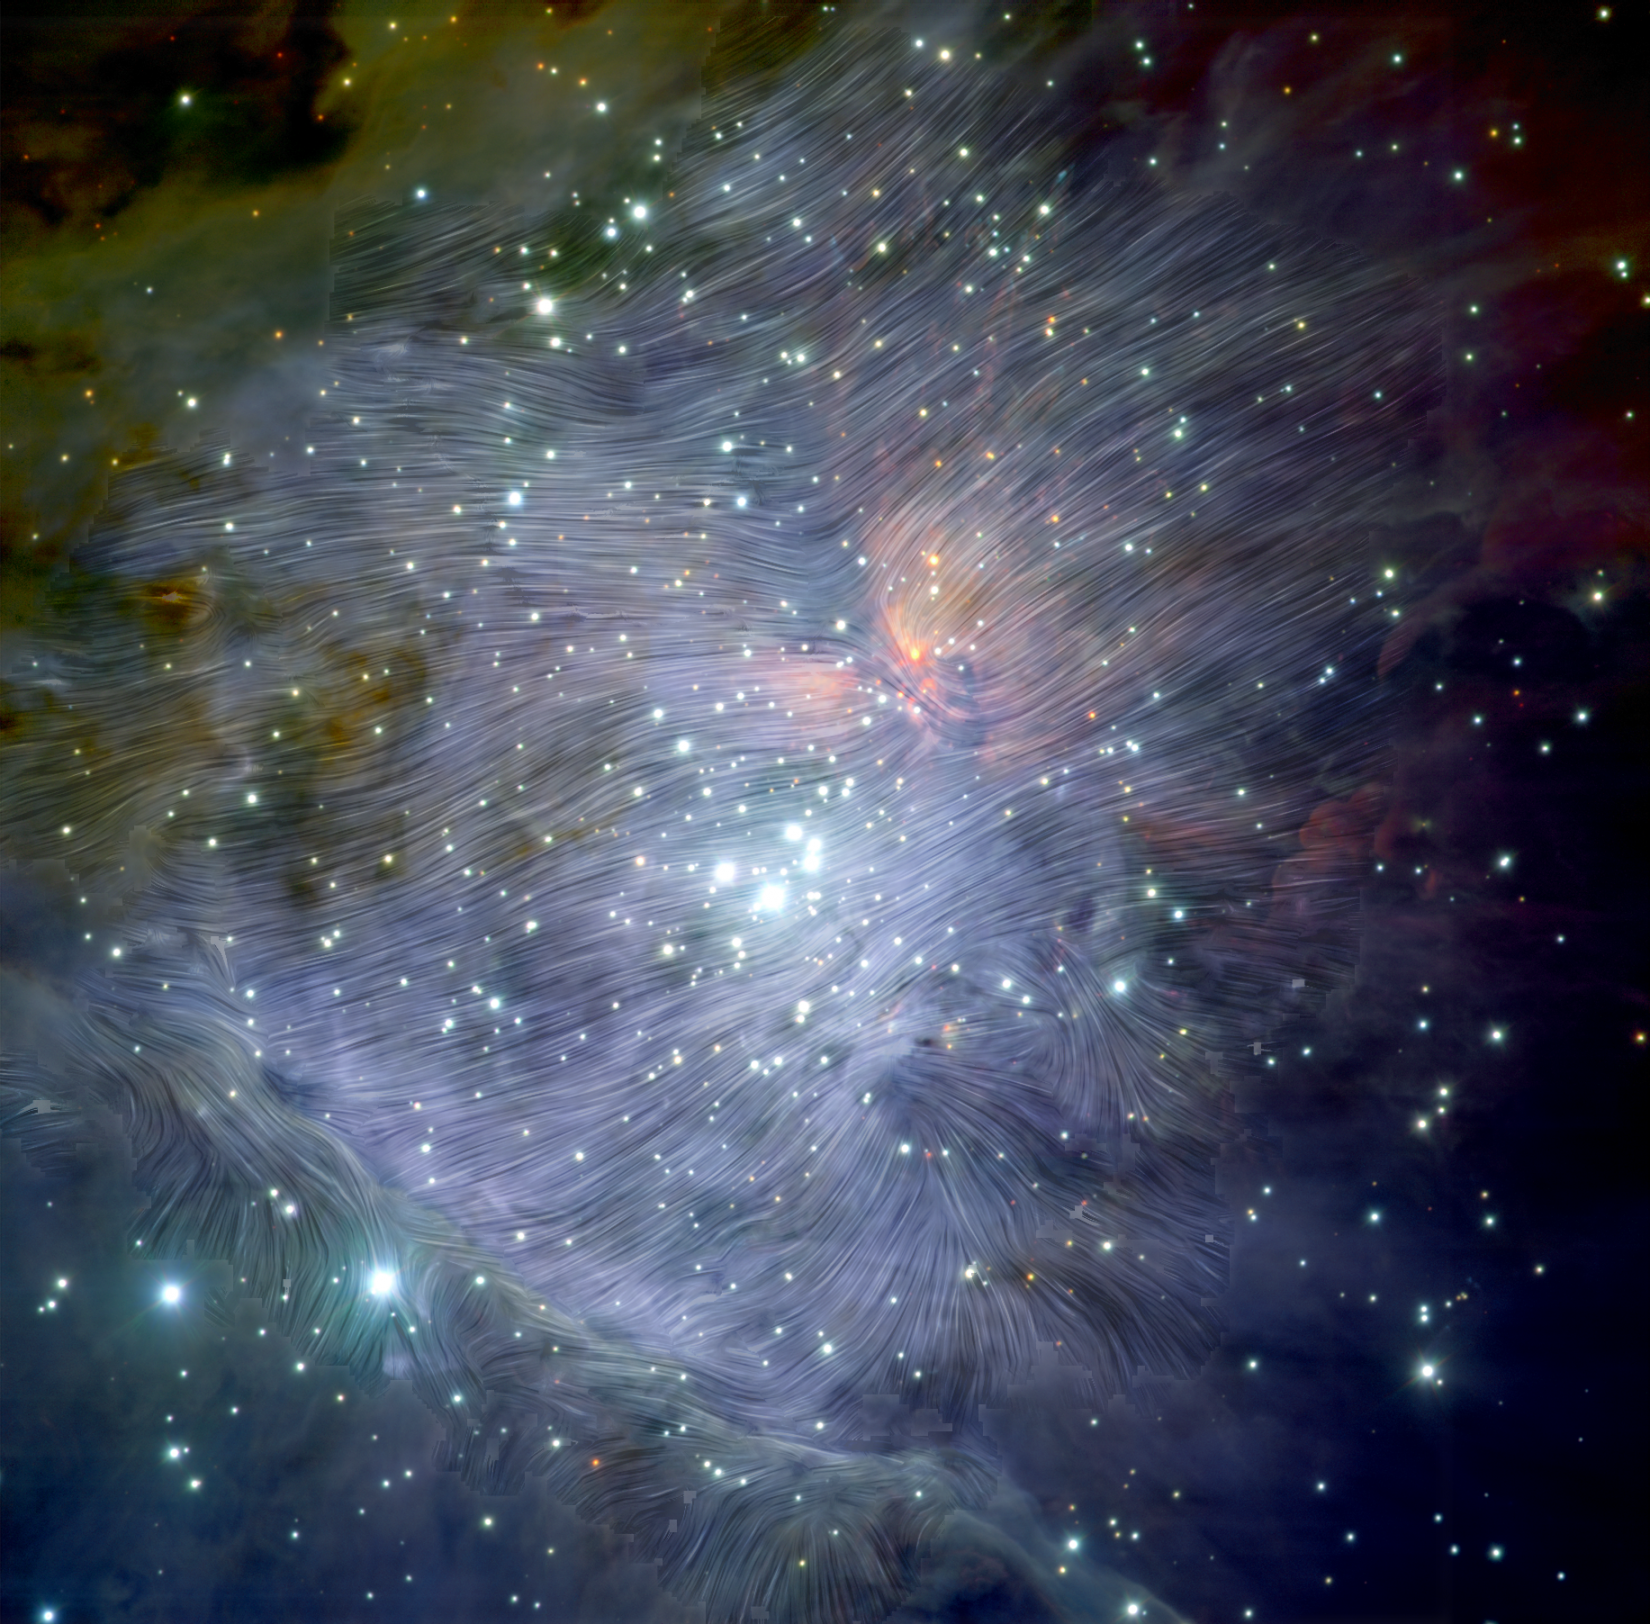 Magnetic fields in the Orion Nebula